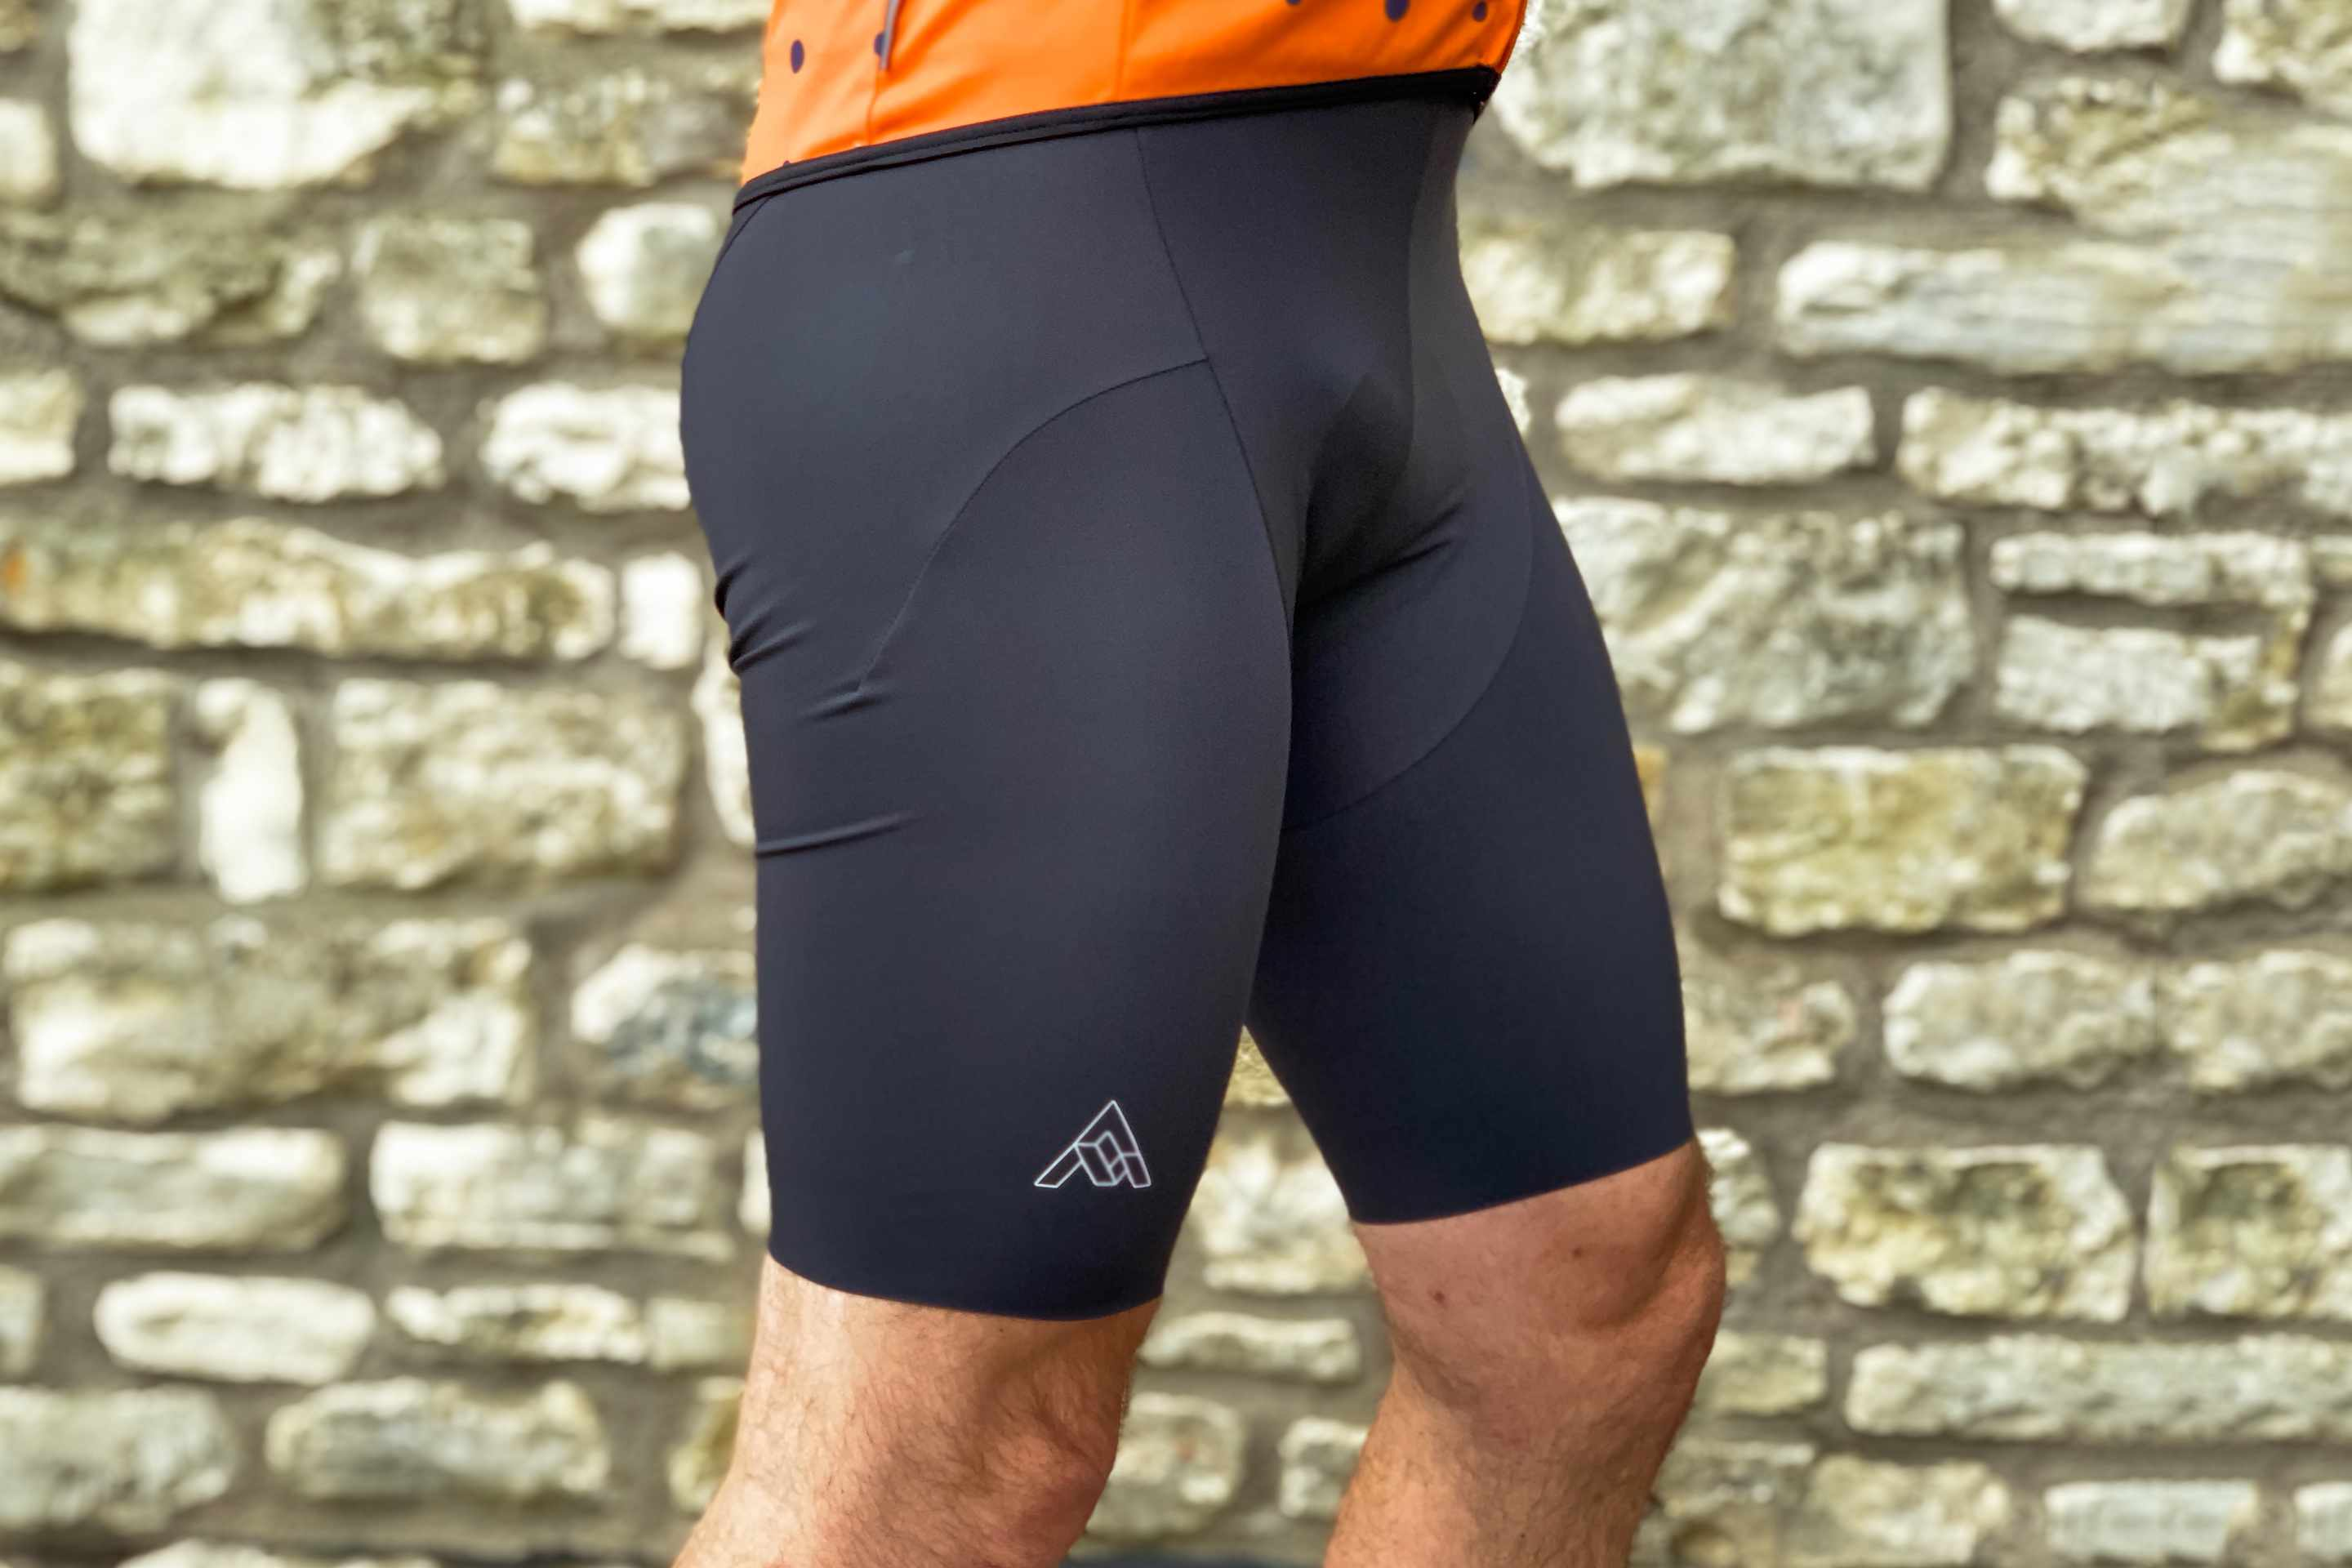 Man wears 7Mesh MK3 padded cycling short